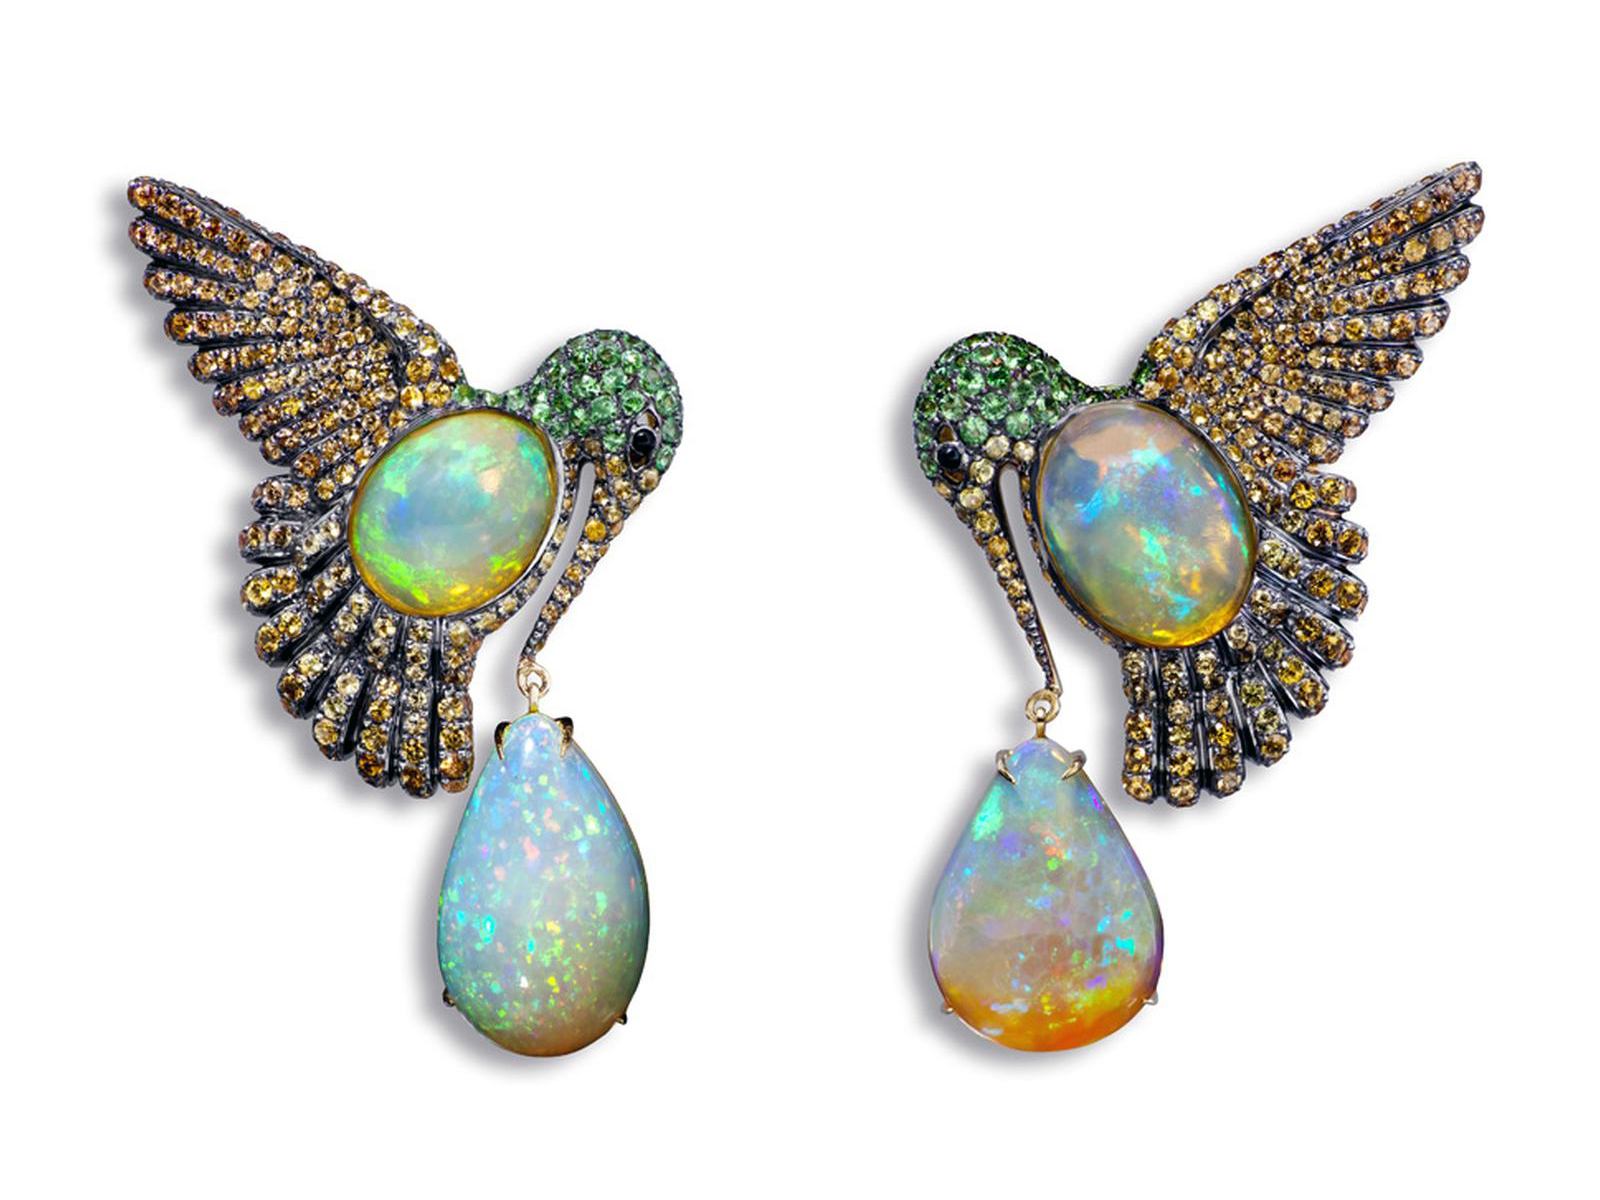 Colibri earrings by Lydia Courteille with orange mexican opals, orange sapphires, green garnet